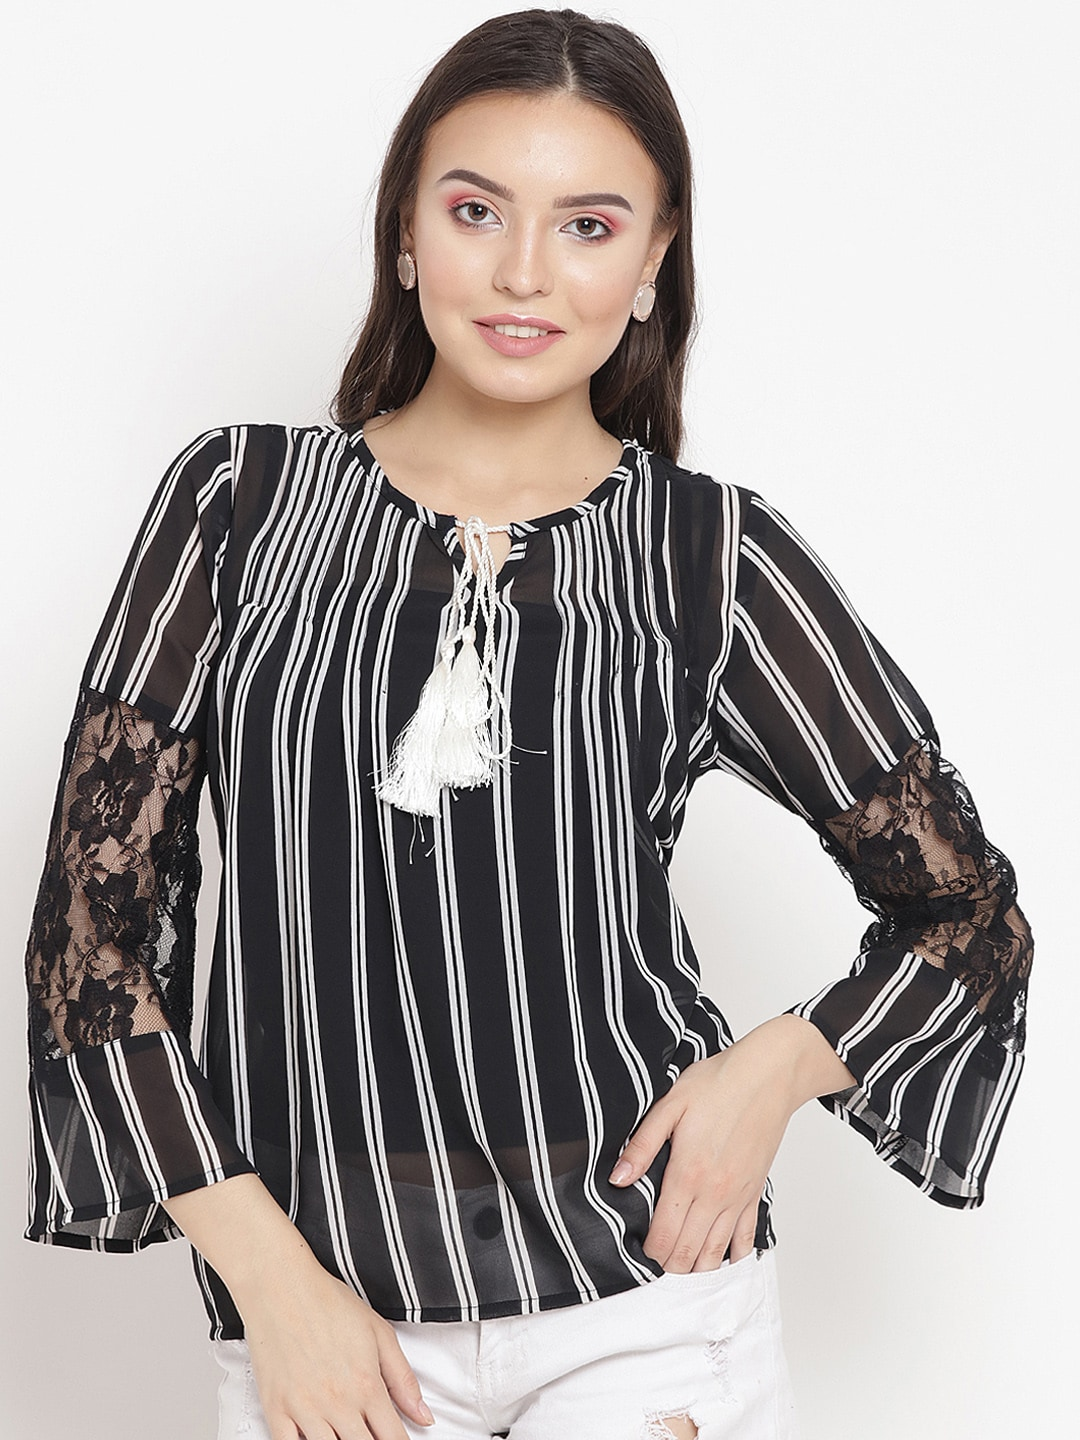 33820bc8182 Women Striped Tops - Buy Women Striped Tops online in India